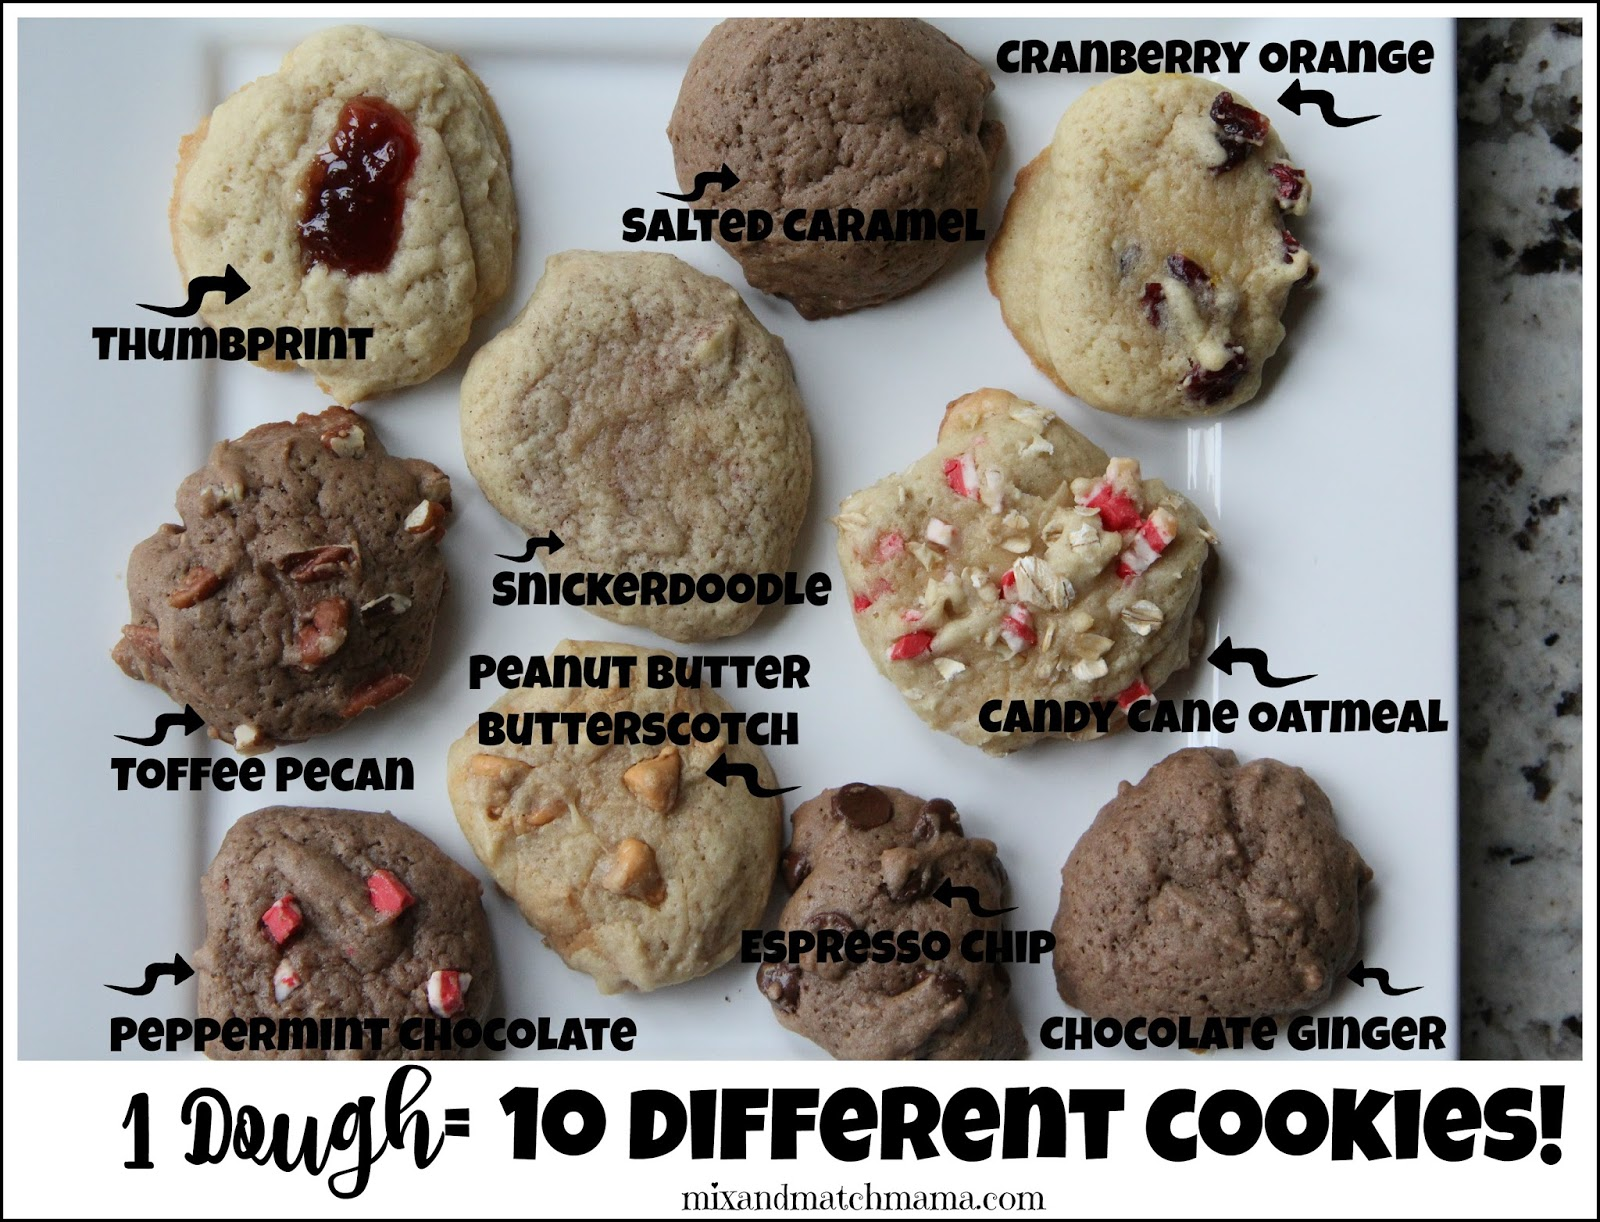 Basic cookie recipe with variations